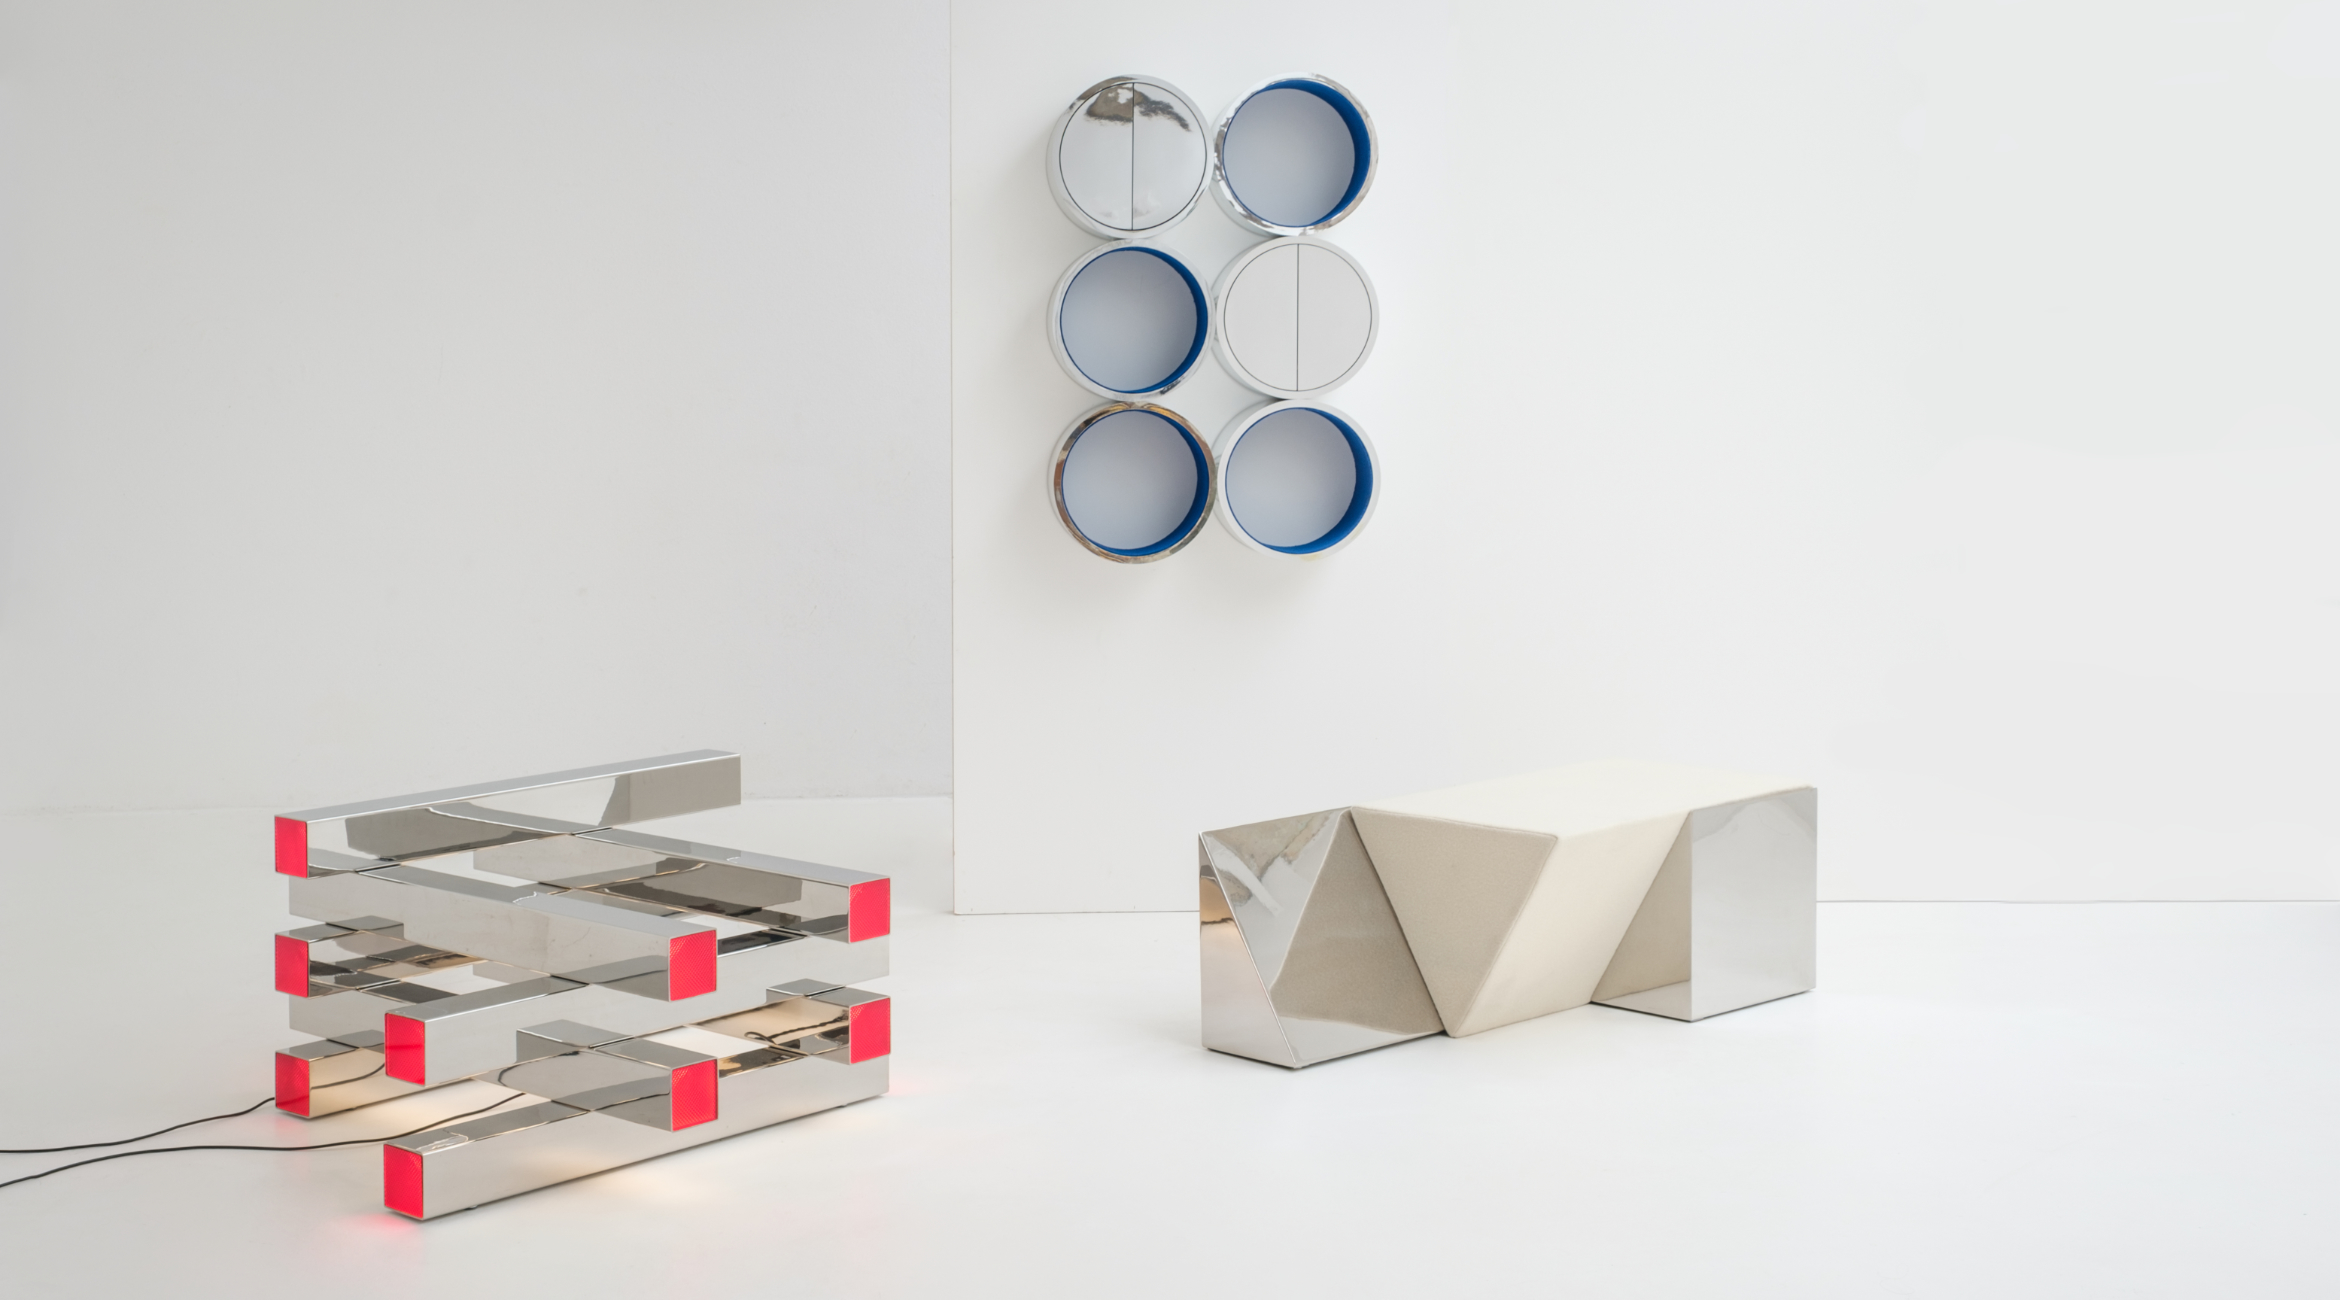 wnew collection of sculptural objects by nortstudio